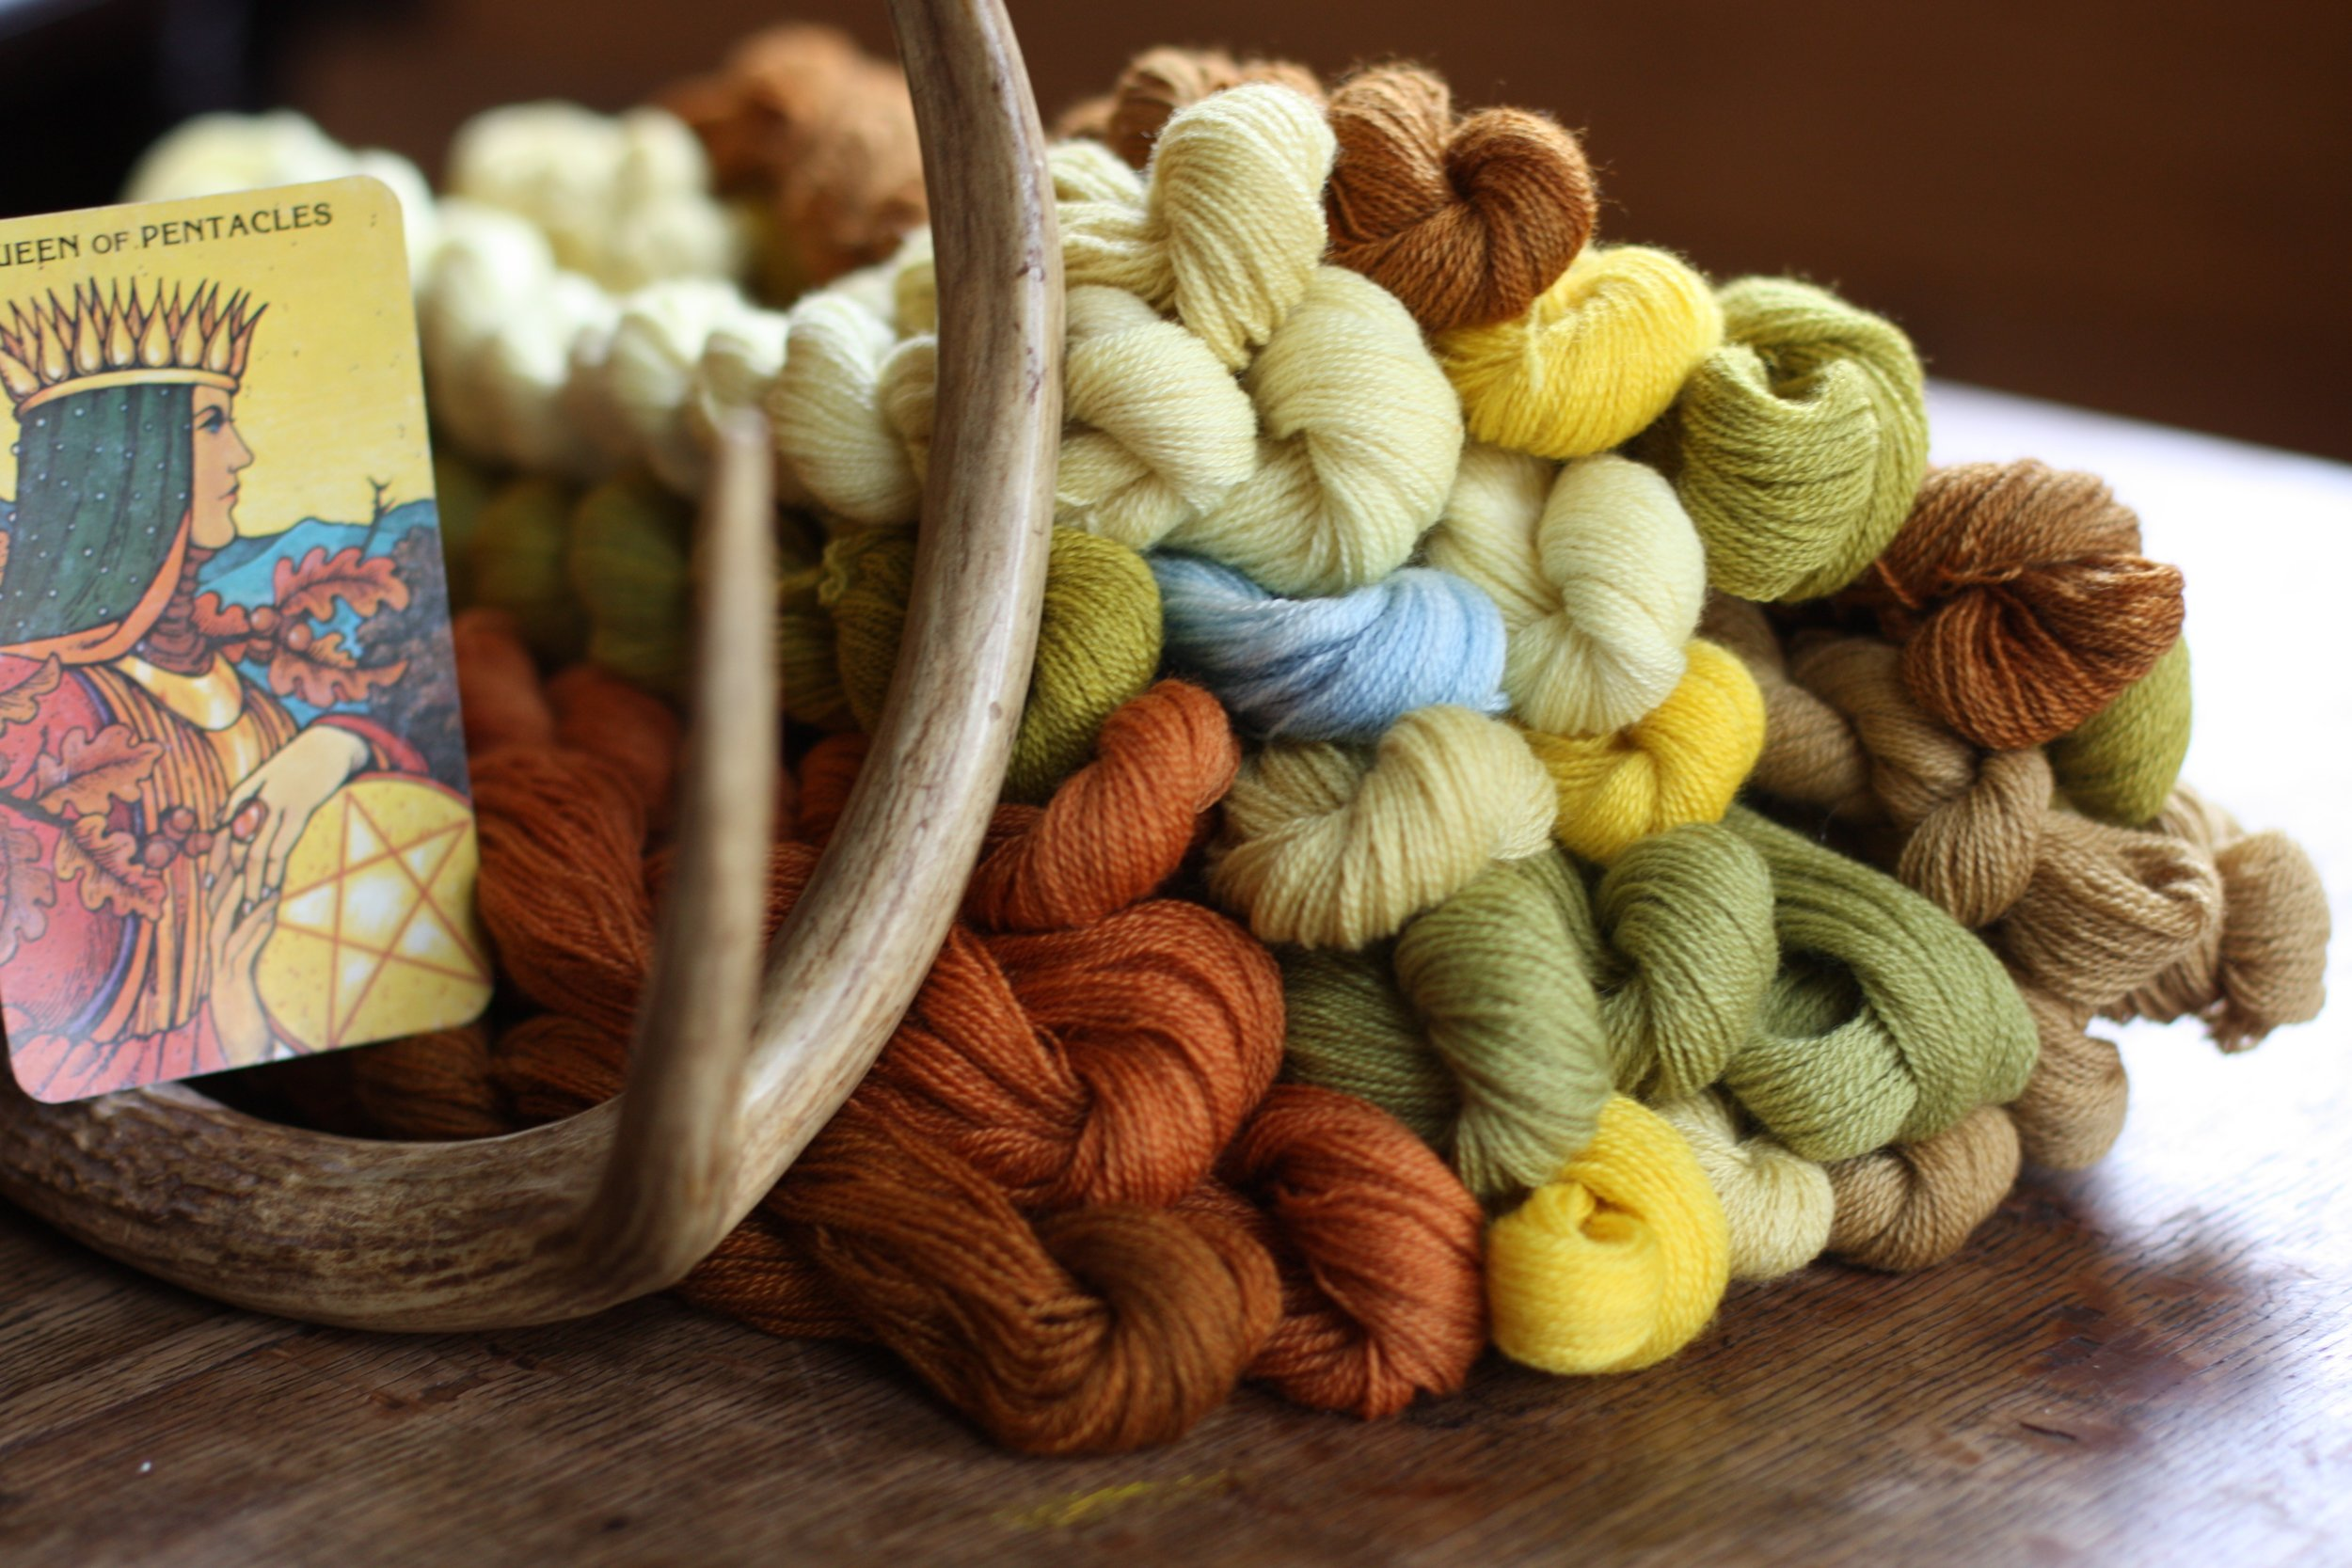 Skeins of naturally dyed wool and the Queen of Pentacles tarot card | 14 Mile Farm Handweaving